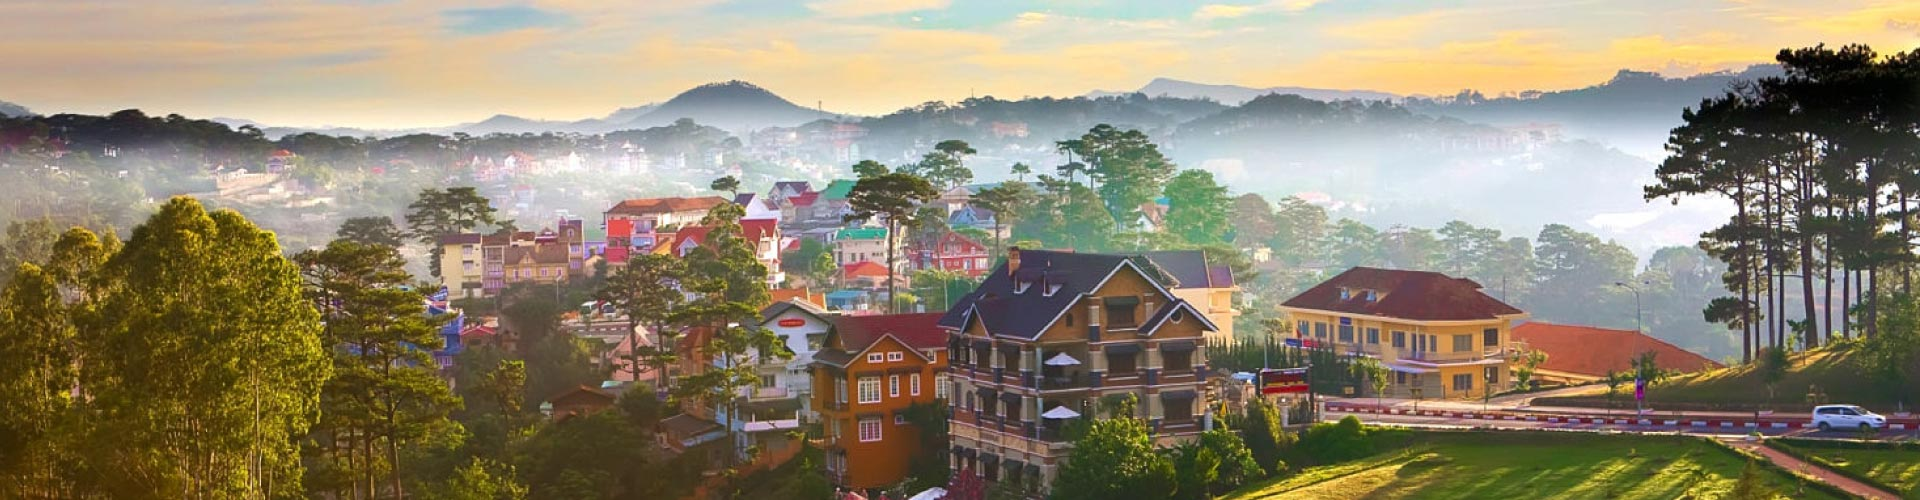 Dalat Instagrammable Tour